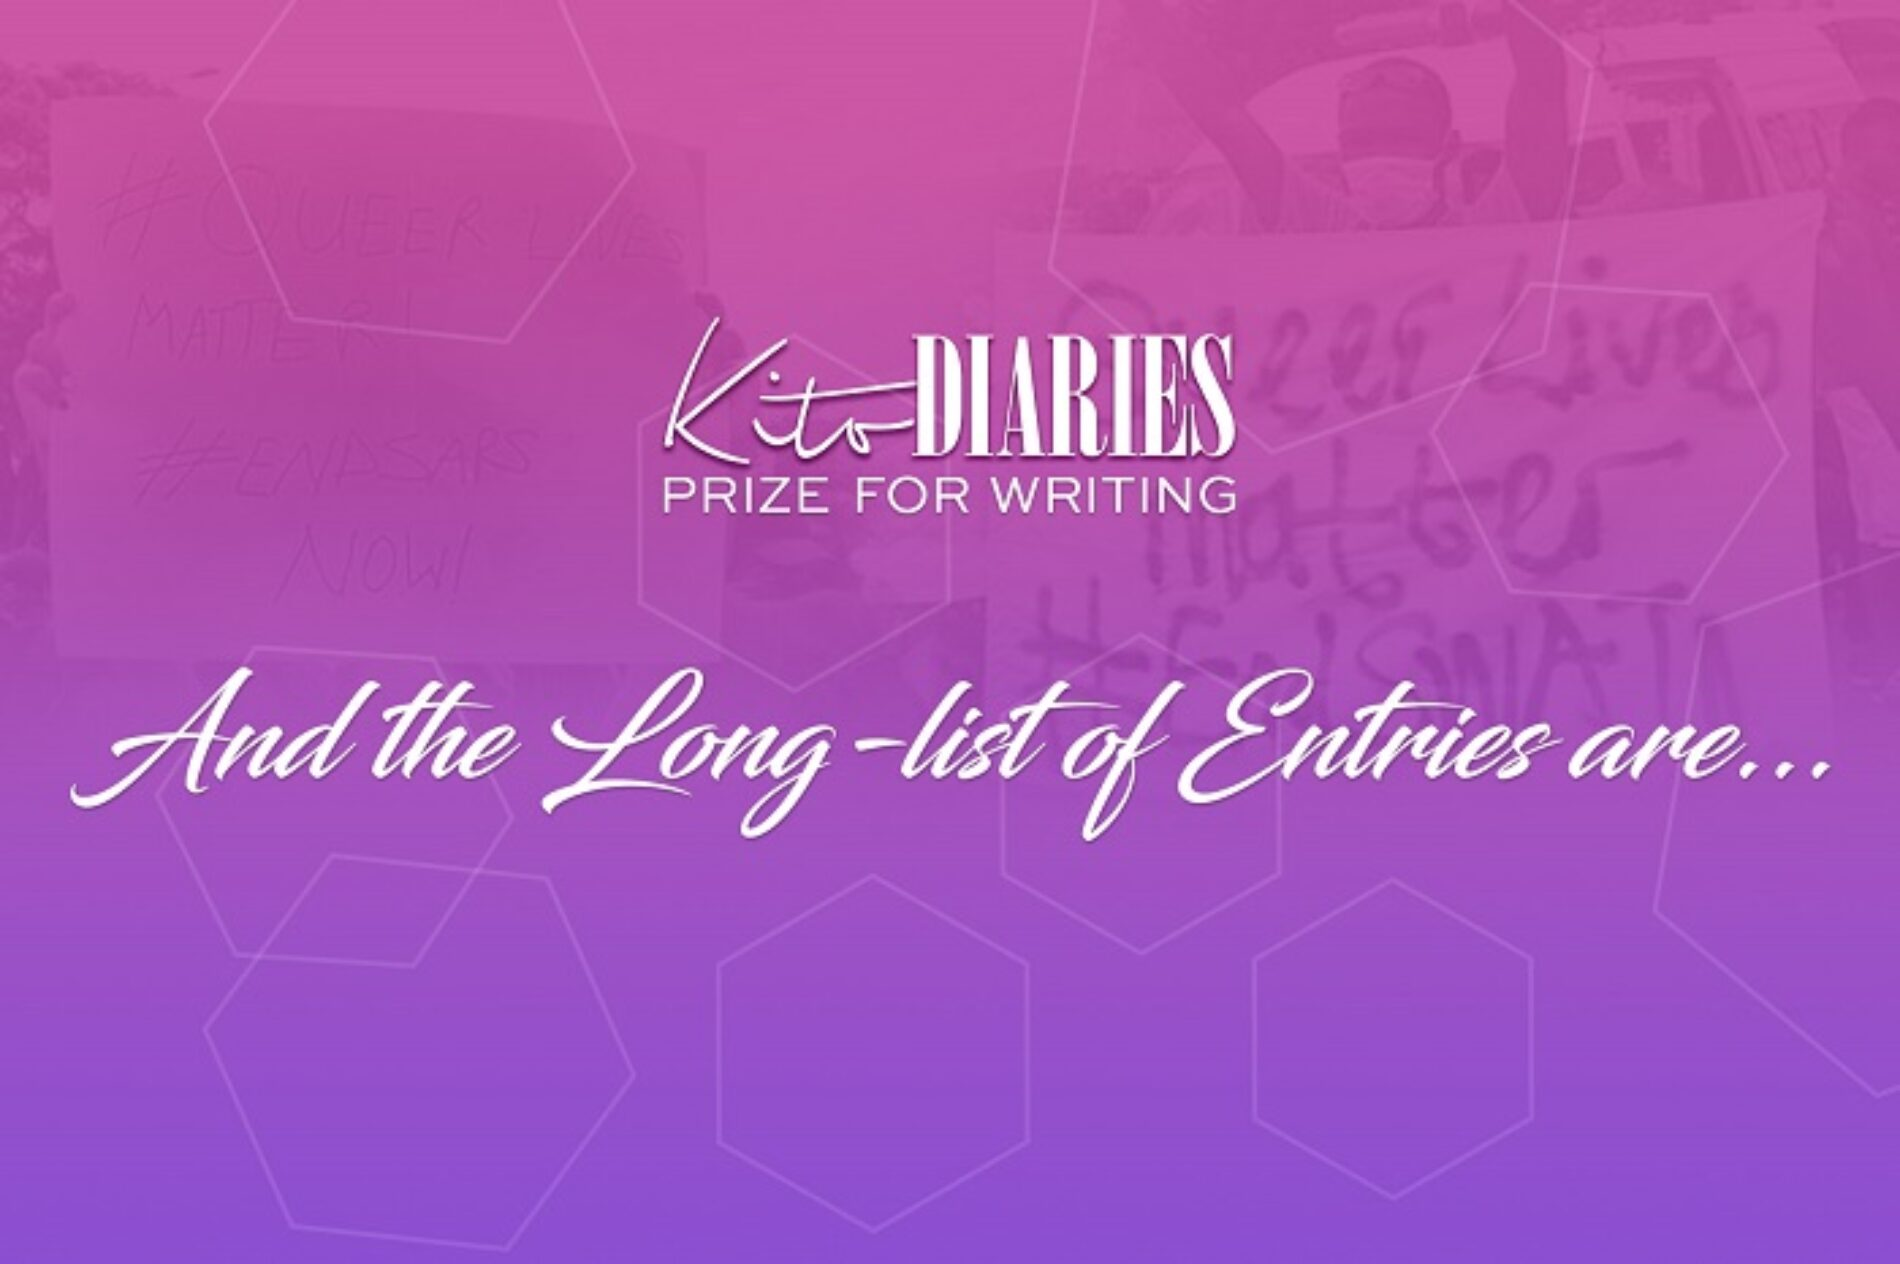 KITO DIARIES PRIZE FOR WRITING: AND THE LONGLIST OF ENTRIES ARE…